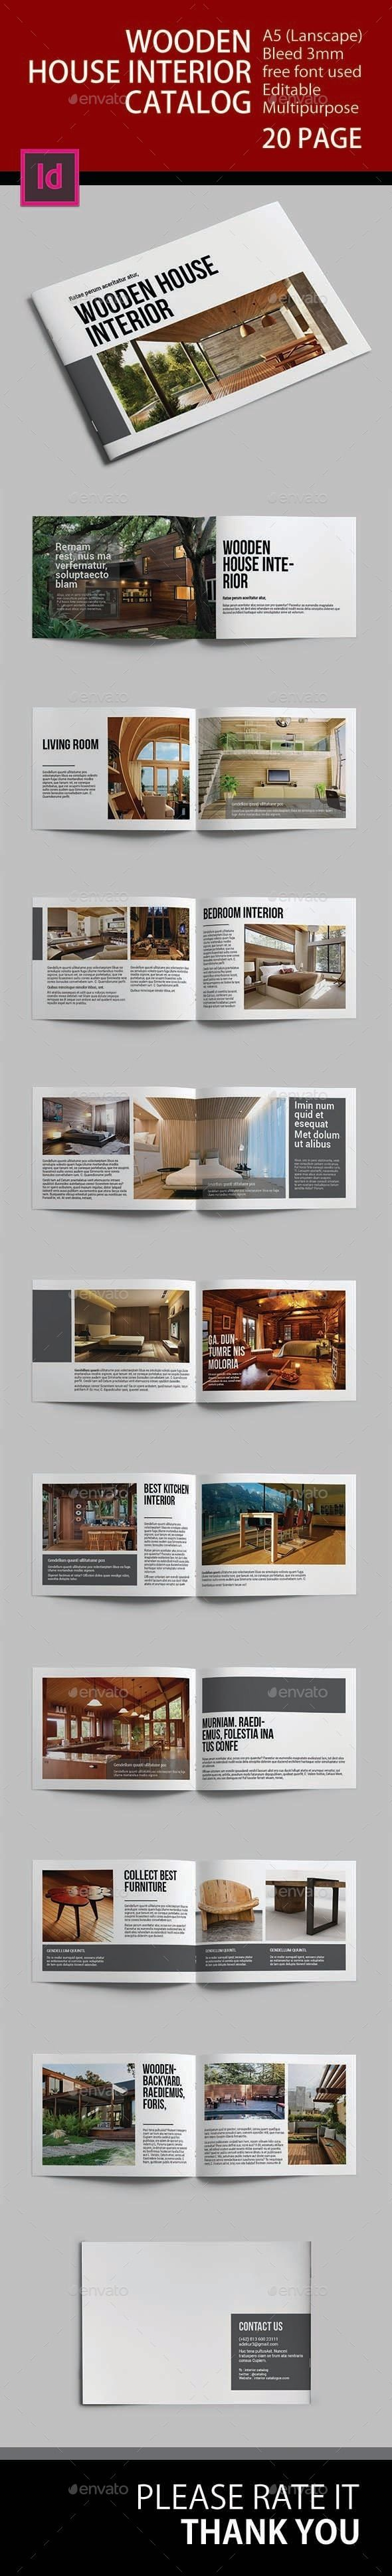 Design Portfolios House Interior Catalog Brochure